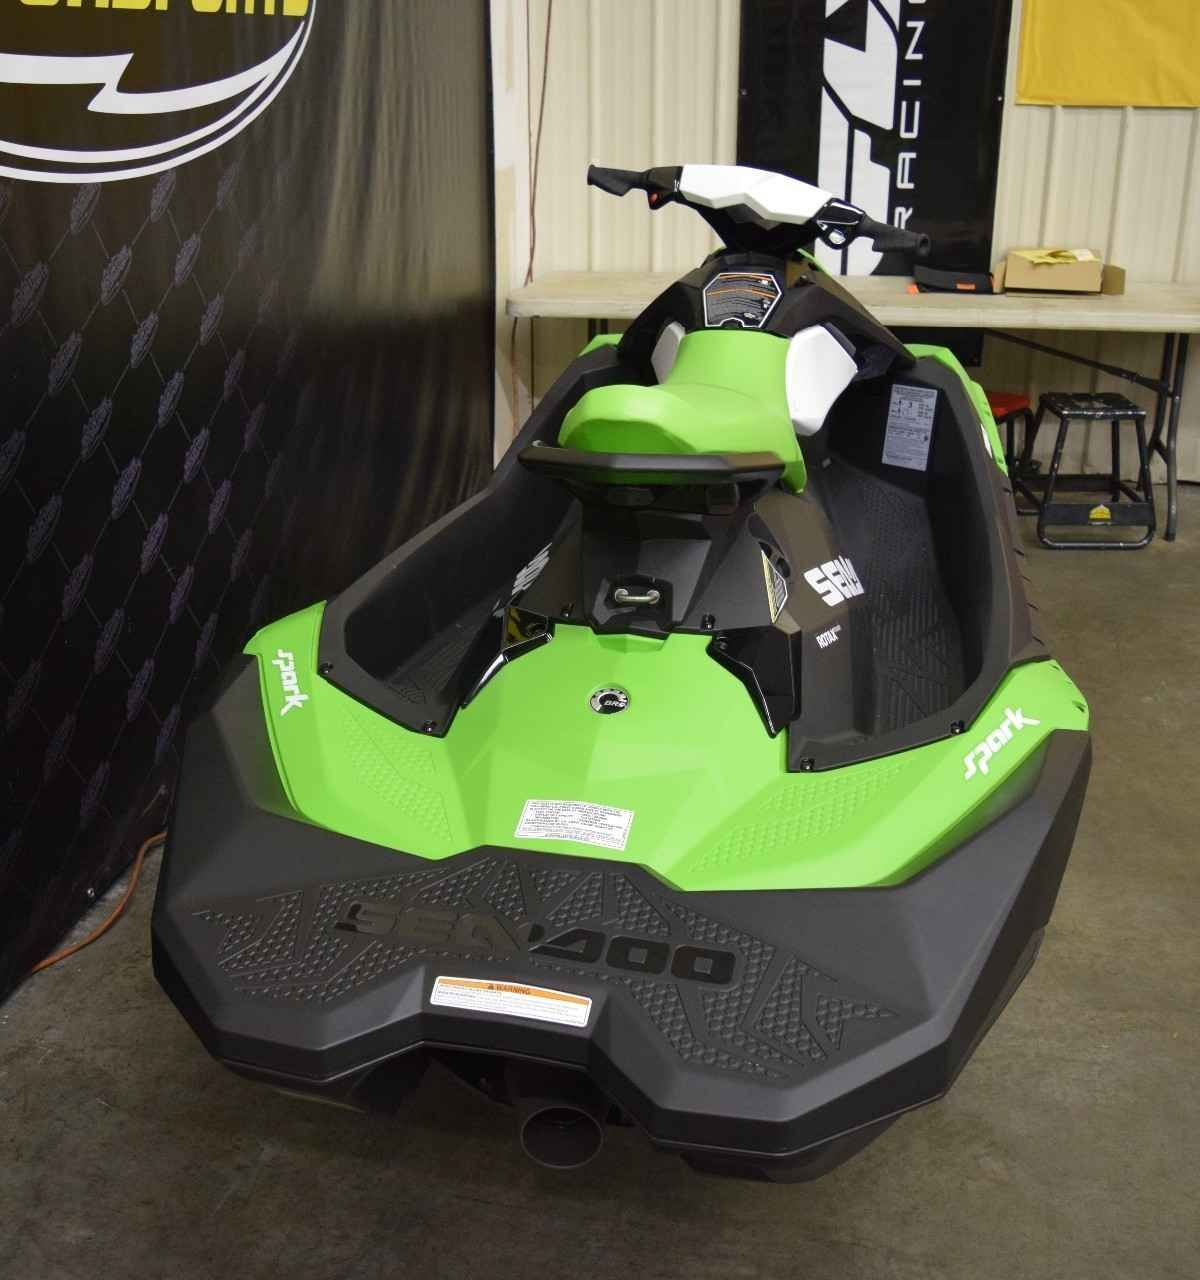 New 2016 Sea Doo SPARK 3UP ROTAX 900 HO ACE KEY LIME Jet